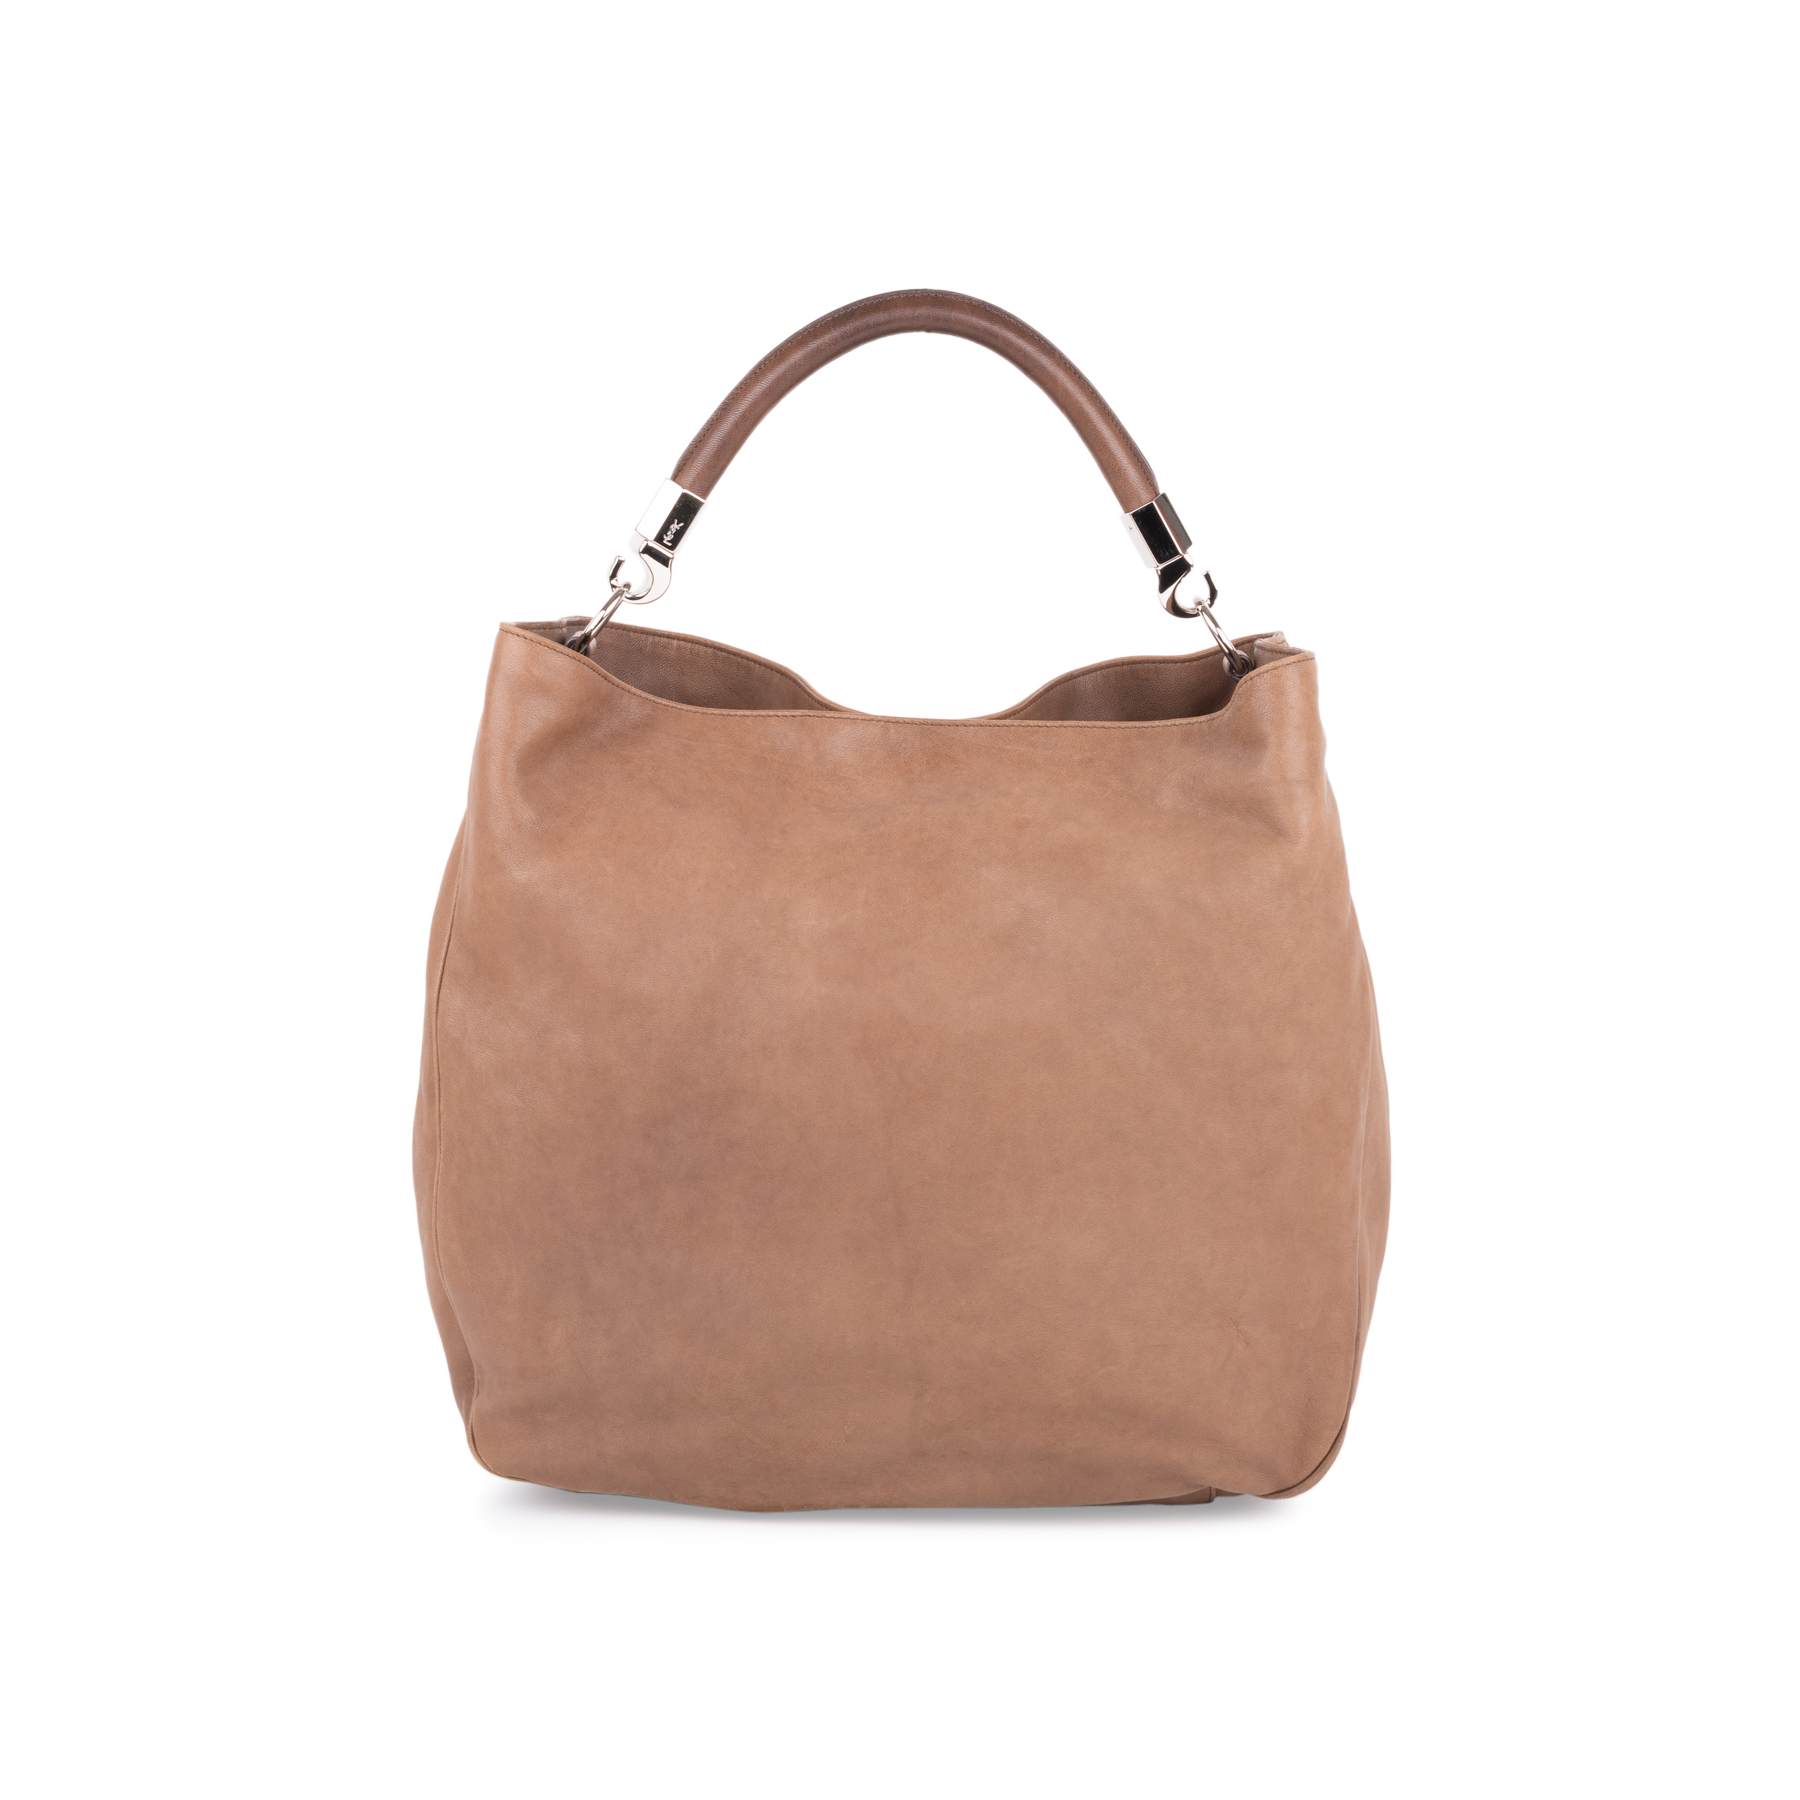 9d1da1aa00e2 Authentic Second Hand Yves Saint Laurent Roady Leather Hobo Bag  (PSS-585-00011)